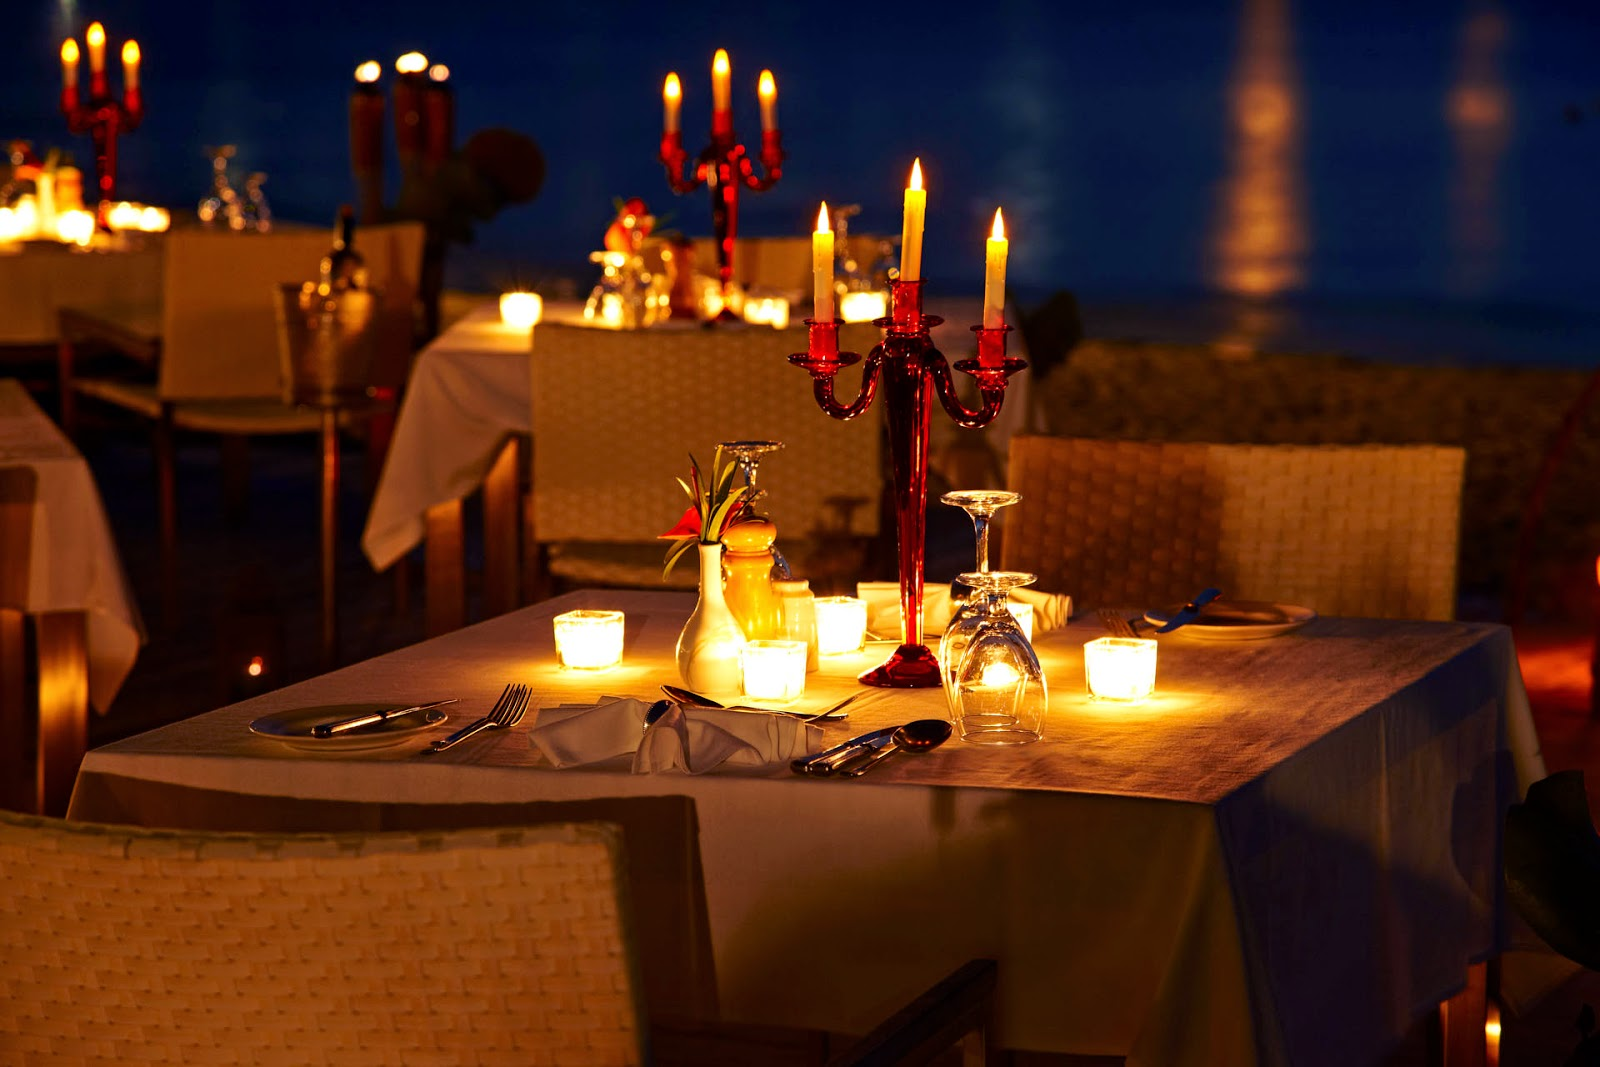 Home Smiley: How To Set Up A Romantic Dinner Table